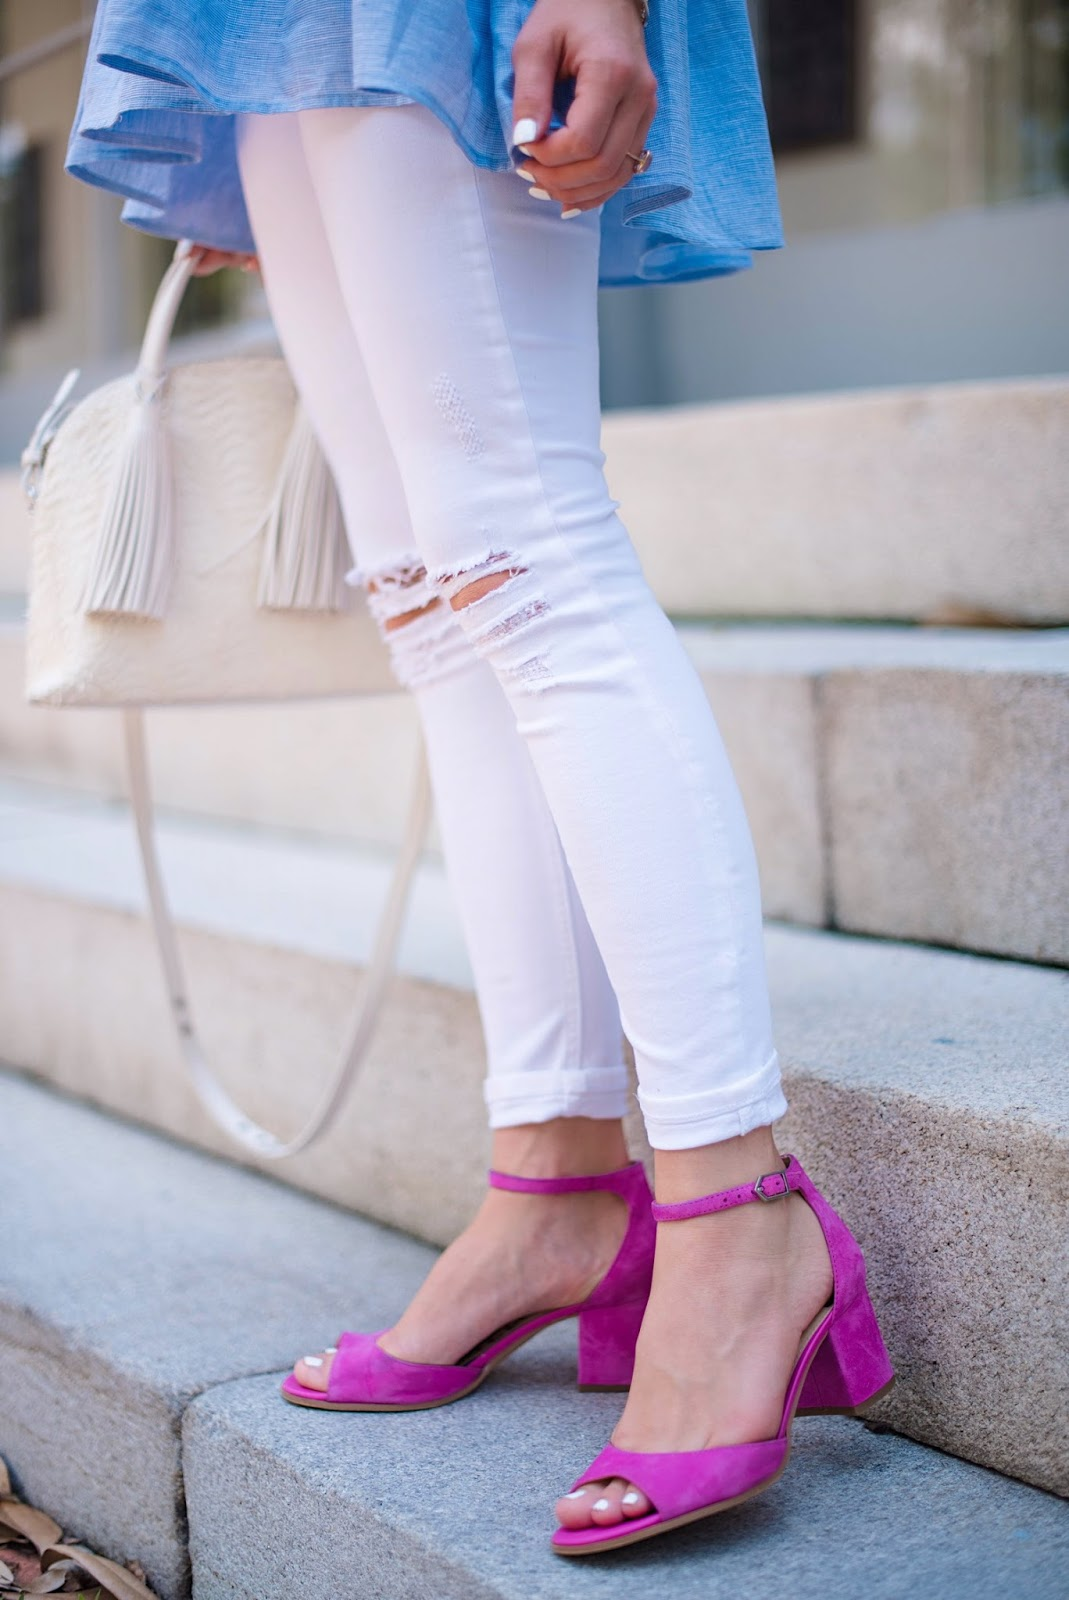 Blue & Pink - Click through to see more on Something Delightful Blog!